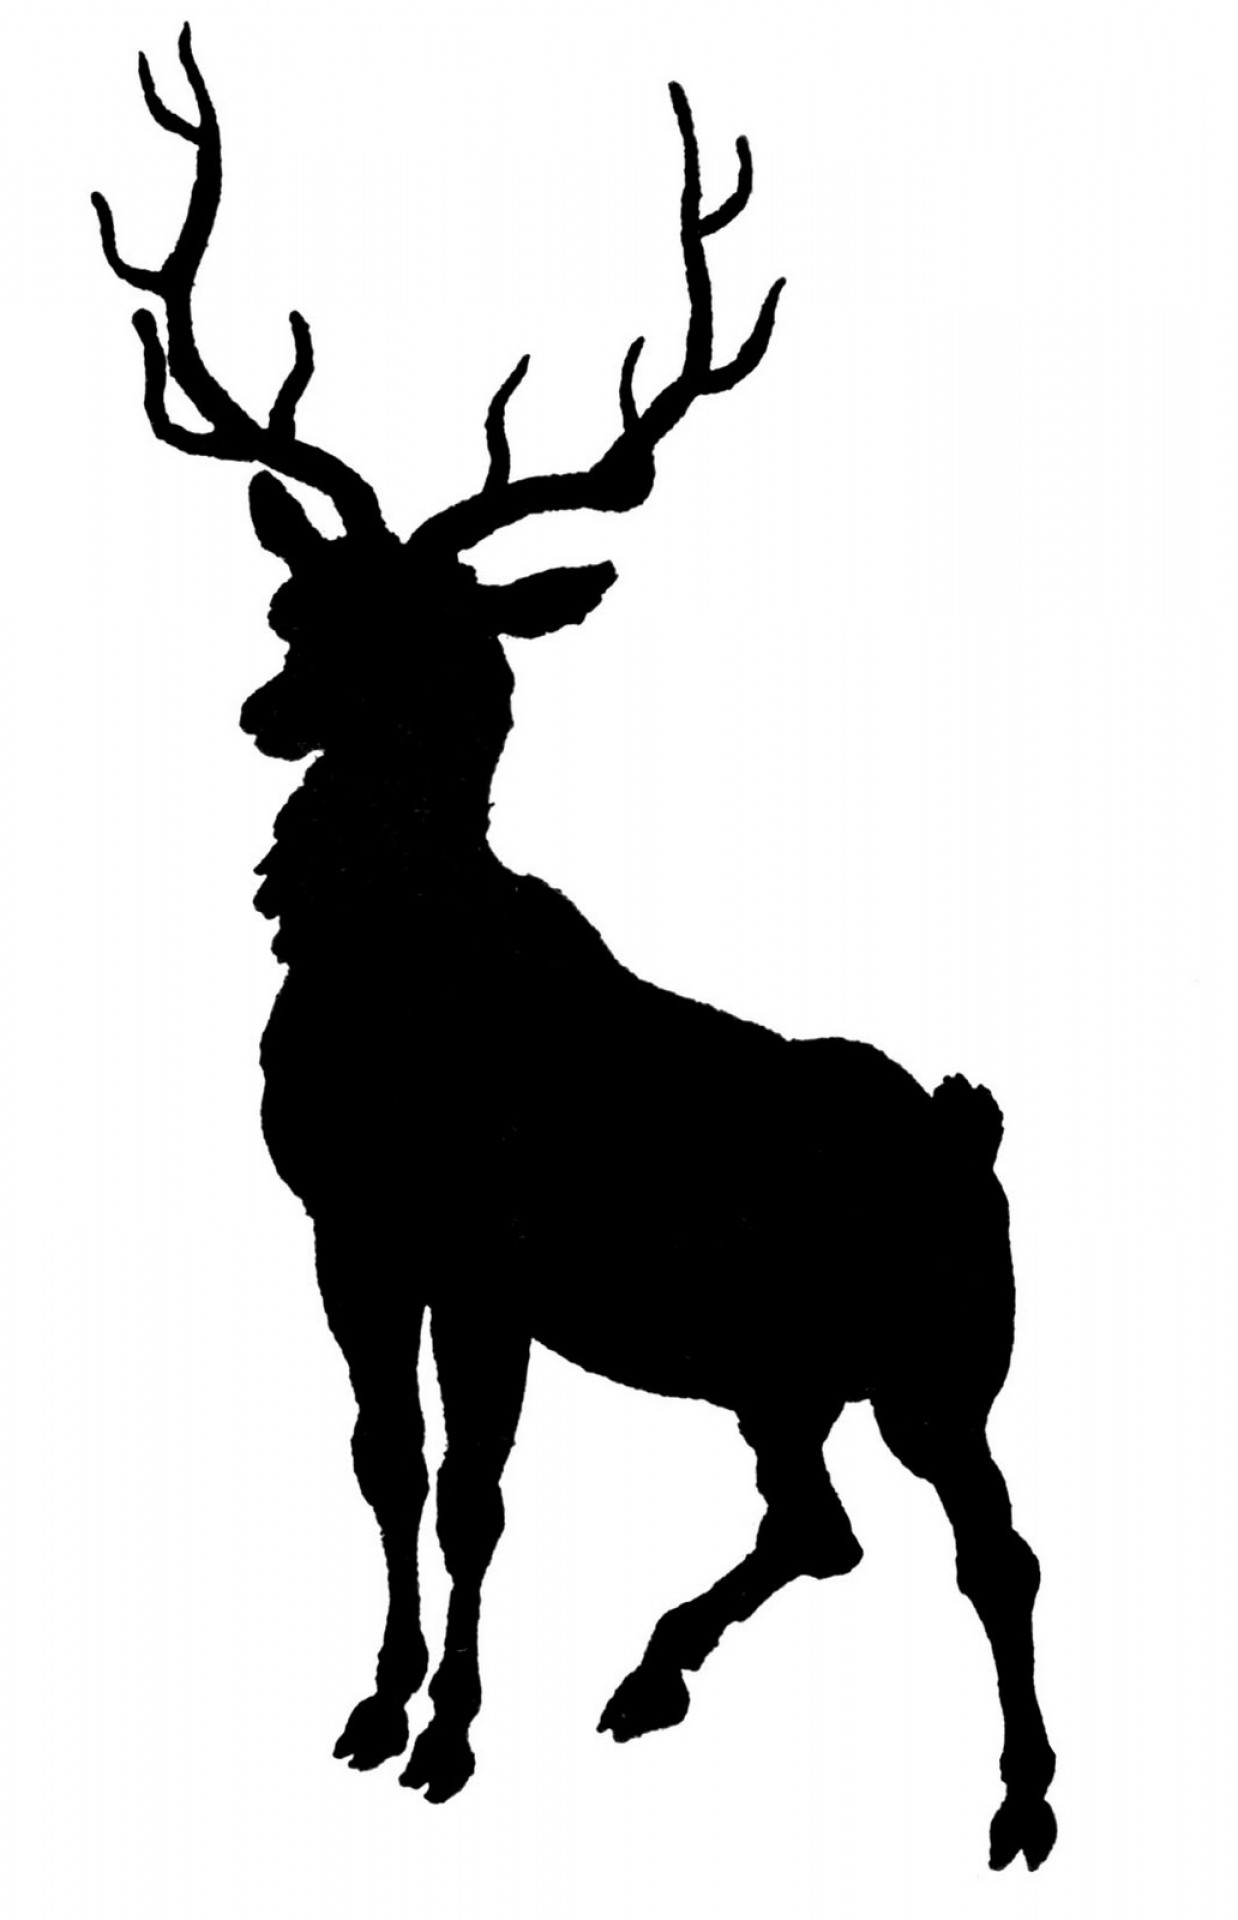 Vintage Clip Art Deer With Antlers Silhouette.